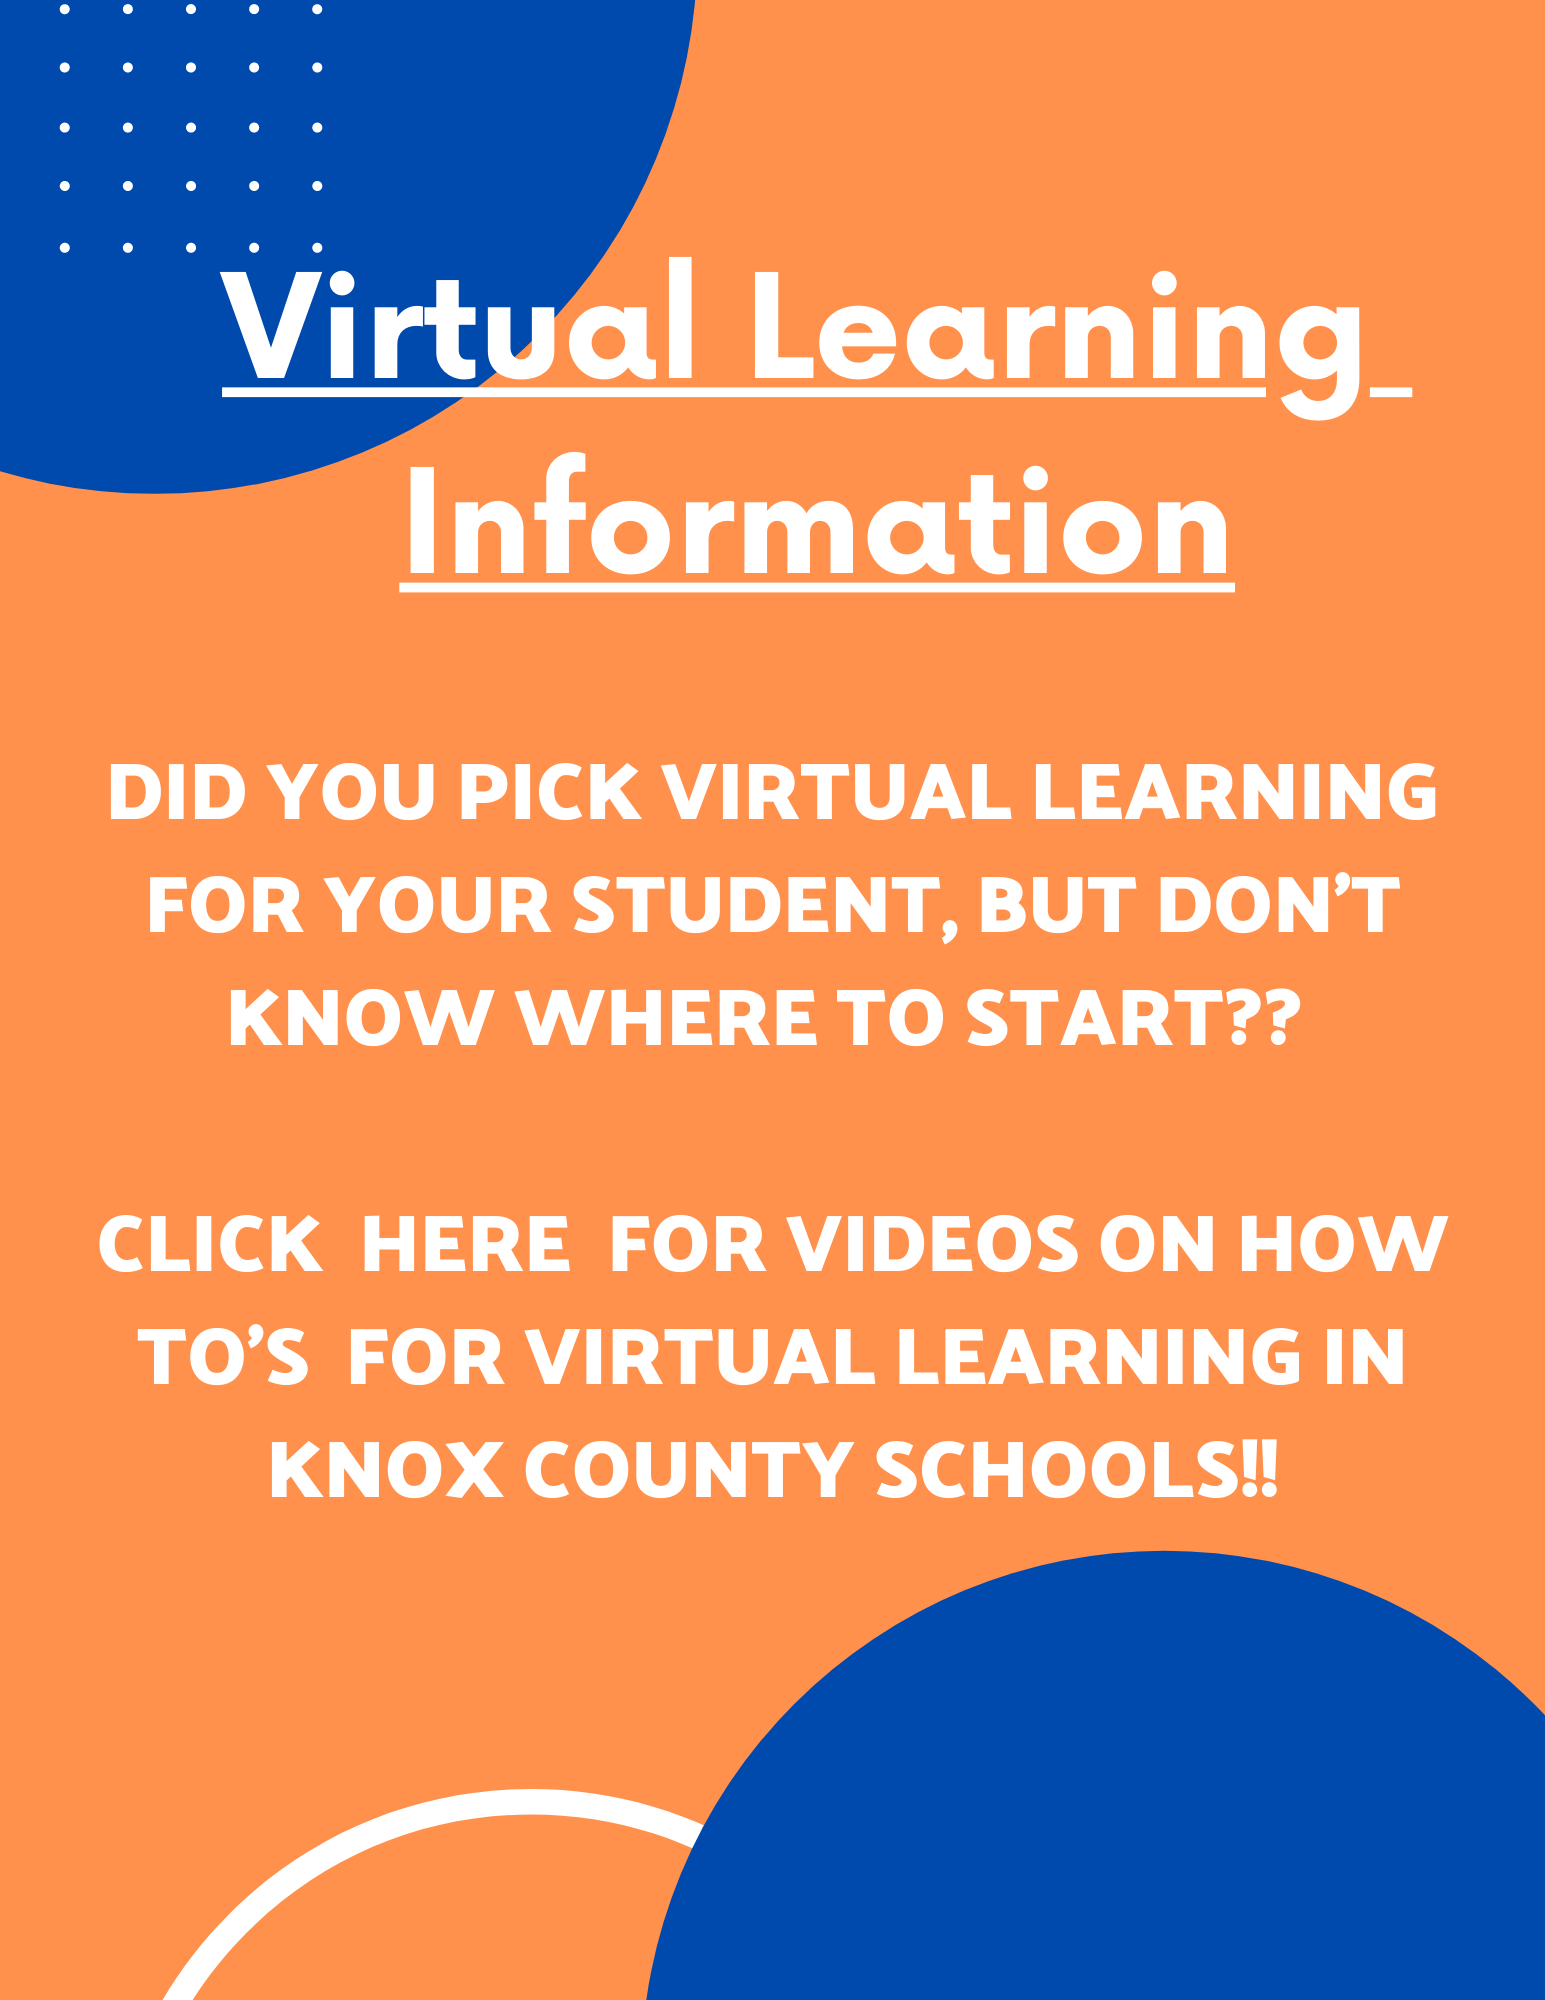 Virtual Learning Information